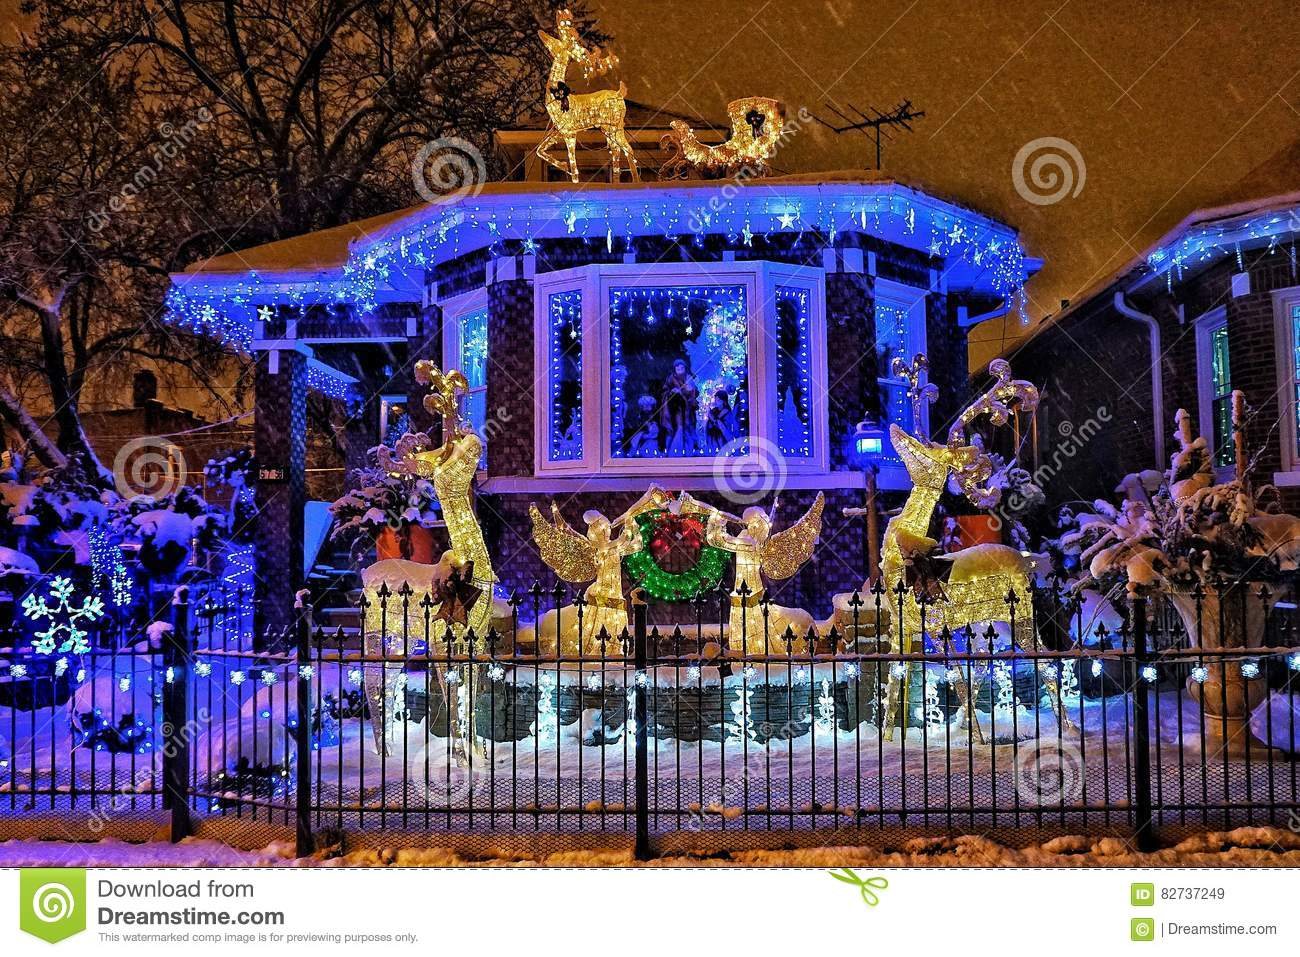 Chicago house with Christmas lights